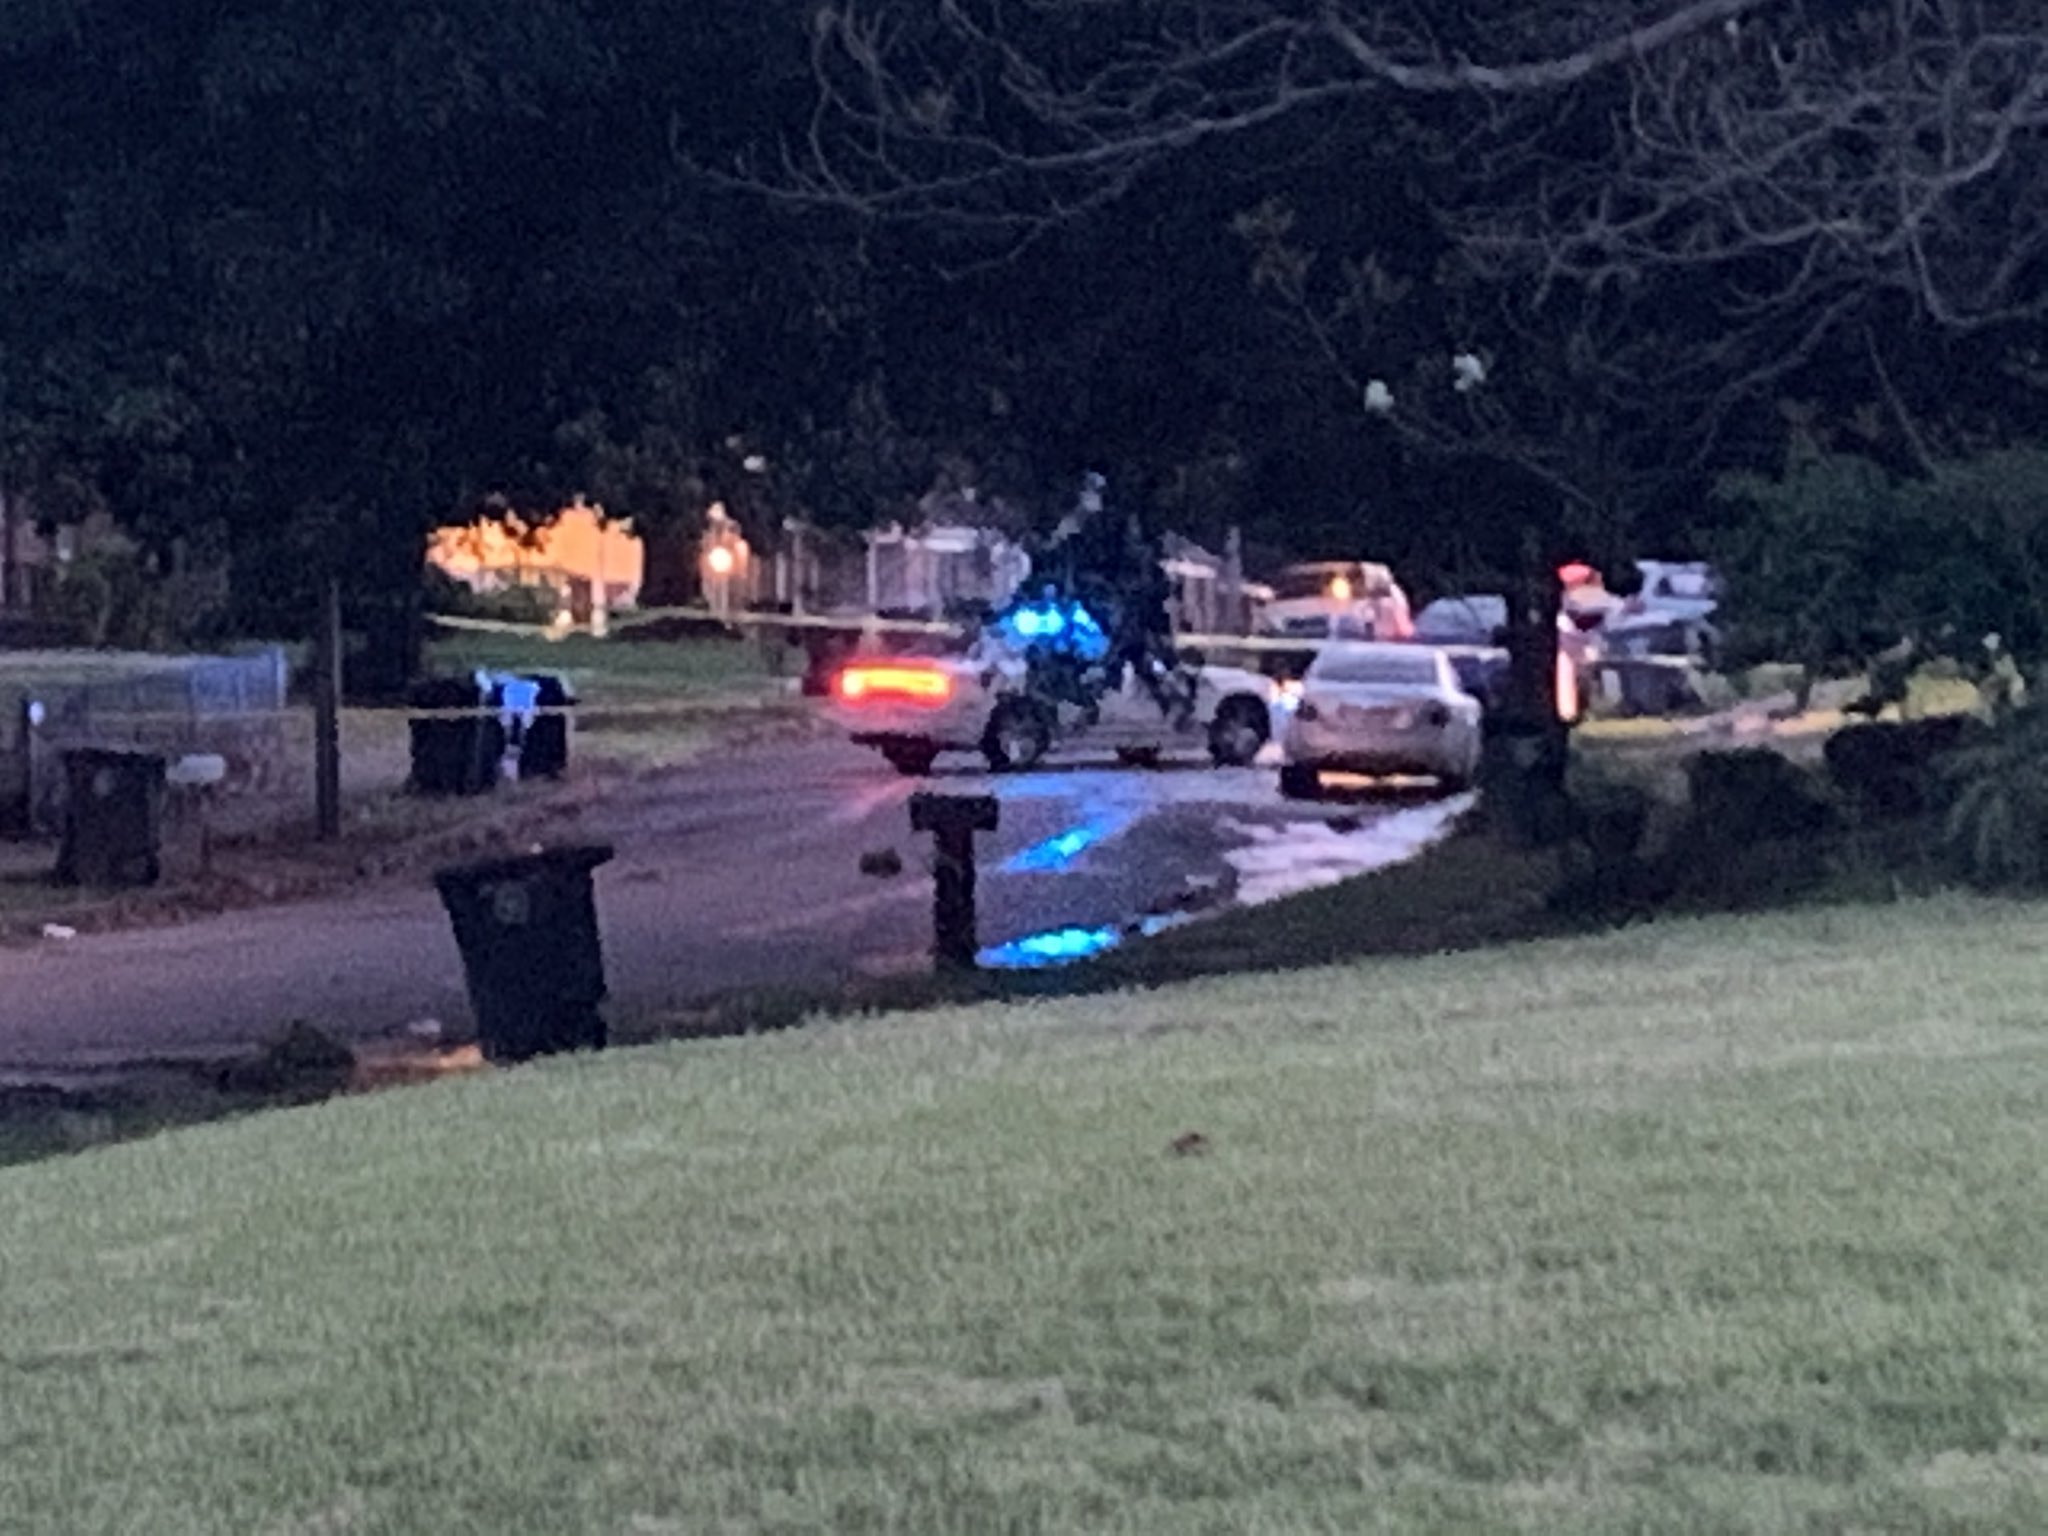 MPD: 1 killed, 1 injured in overnight shooting in Oakhaven